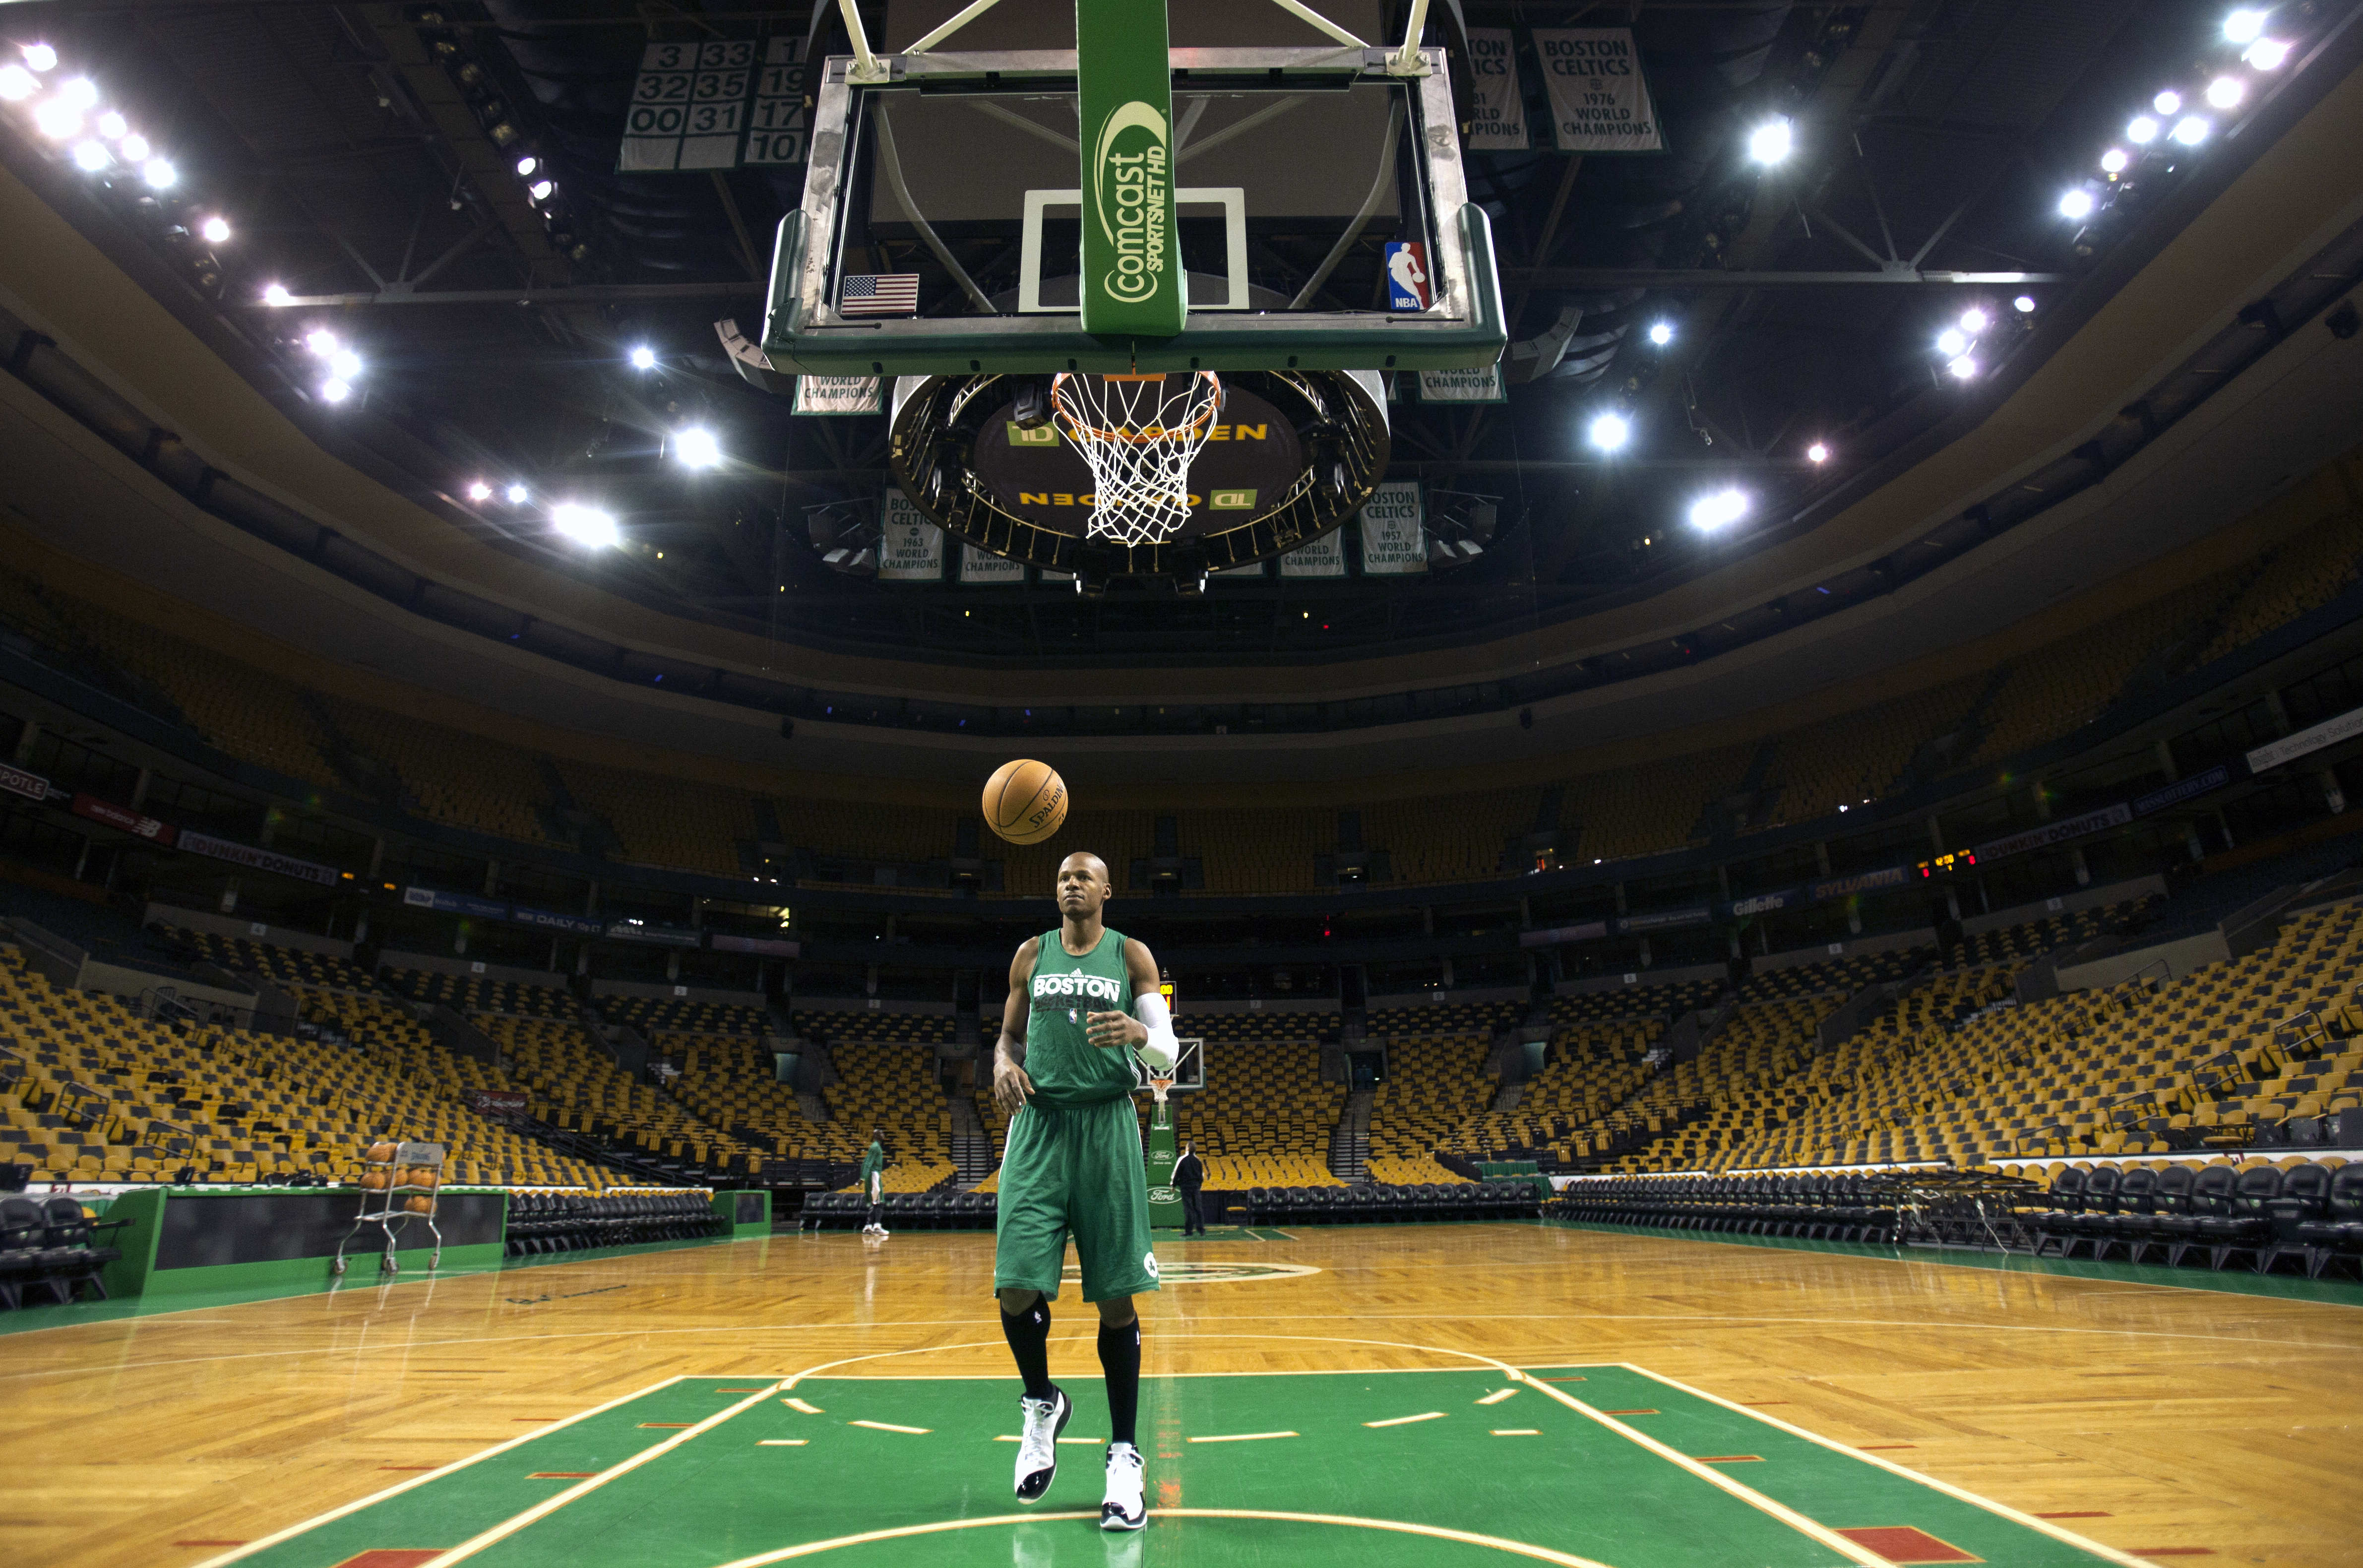 Boston Celtics' Ray Allen takes some shots before a media availability at TD Garden in Boston, Friday, Dec. 16, 2011.